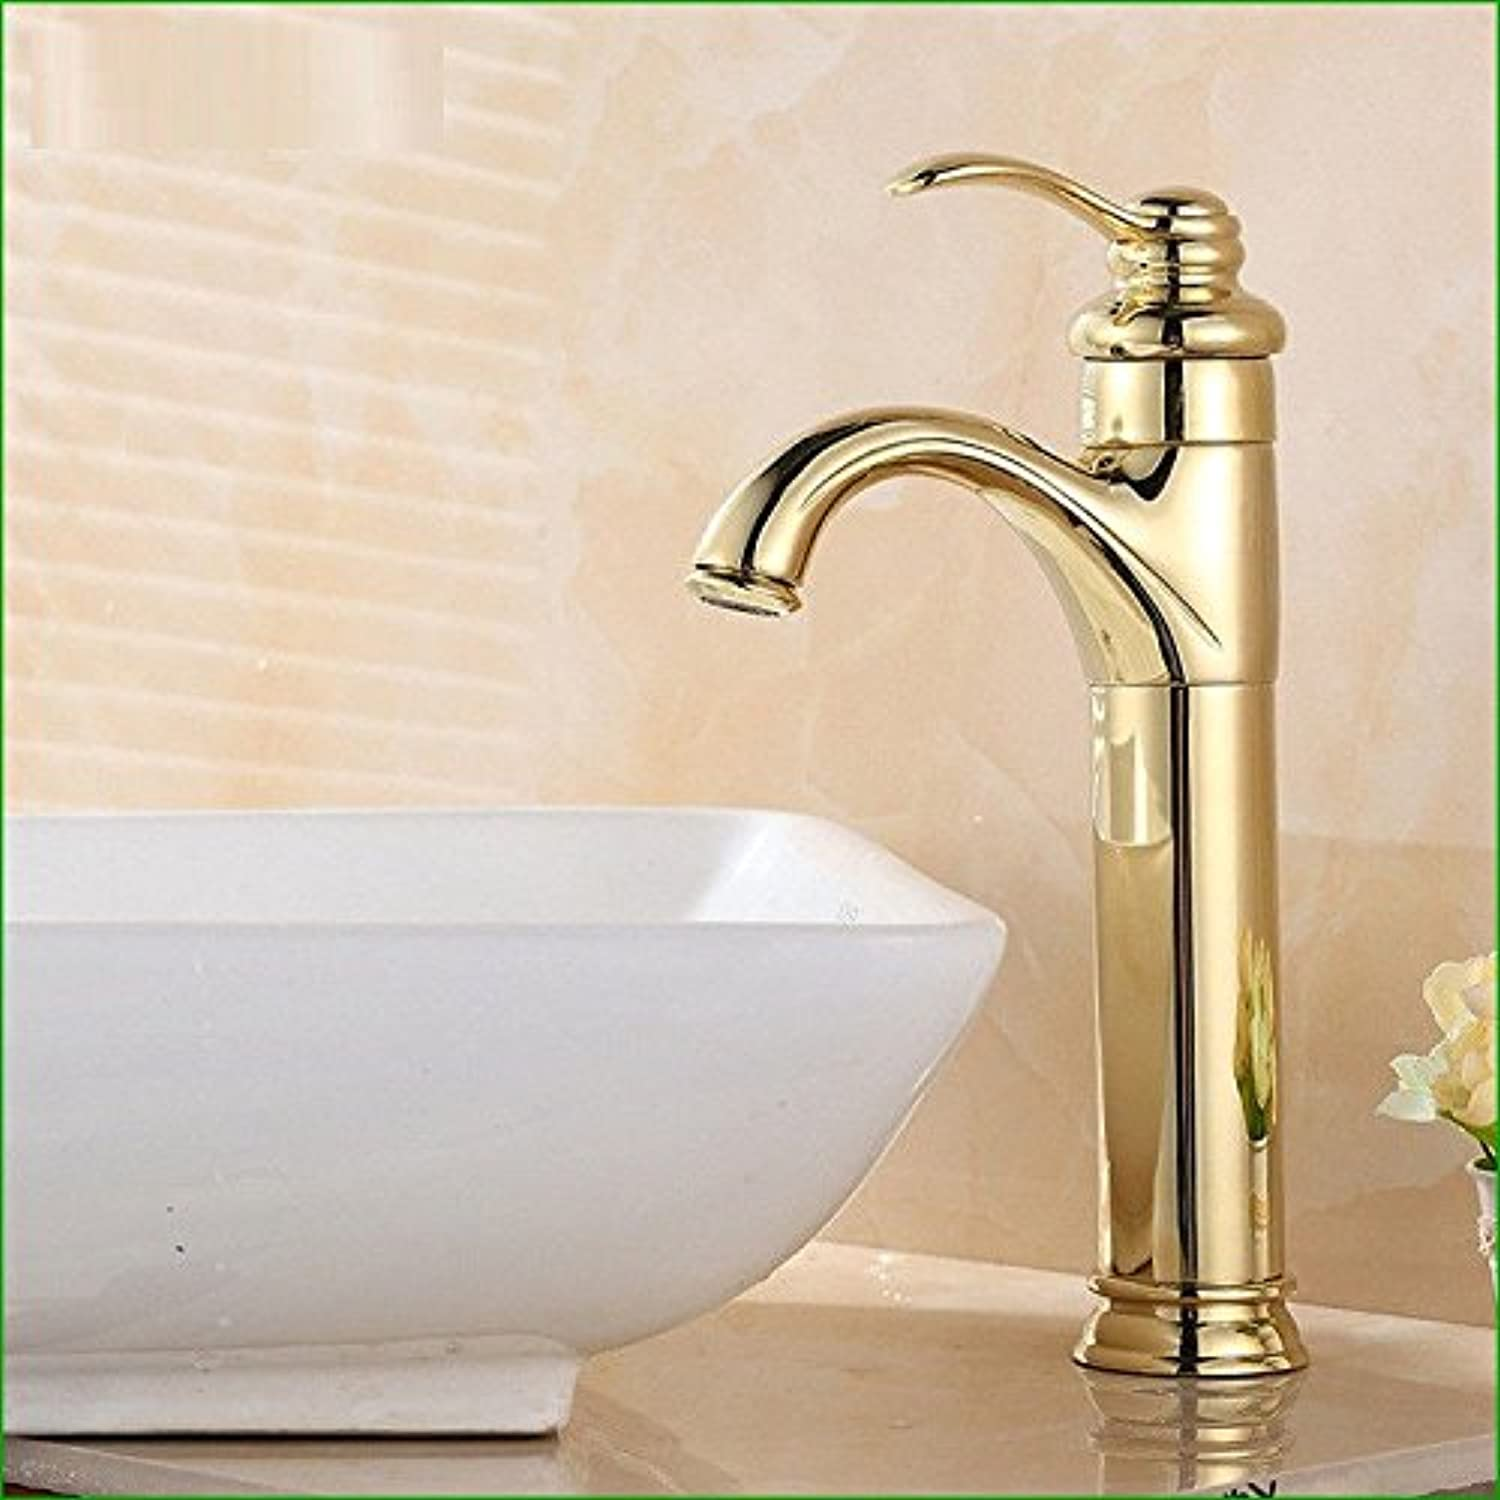 Bijjaladeva Antique Kitchen Sink Mixer Tap gold Plated hot and Cold Water Basin Kitchen Faucet Basin Single-in-Water Faucet